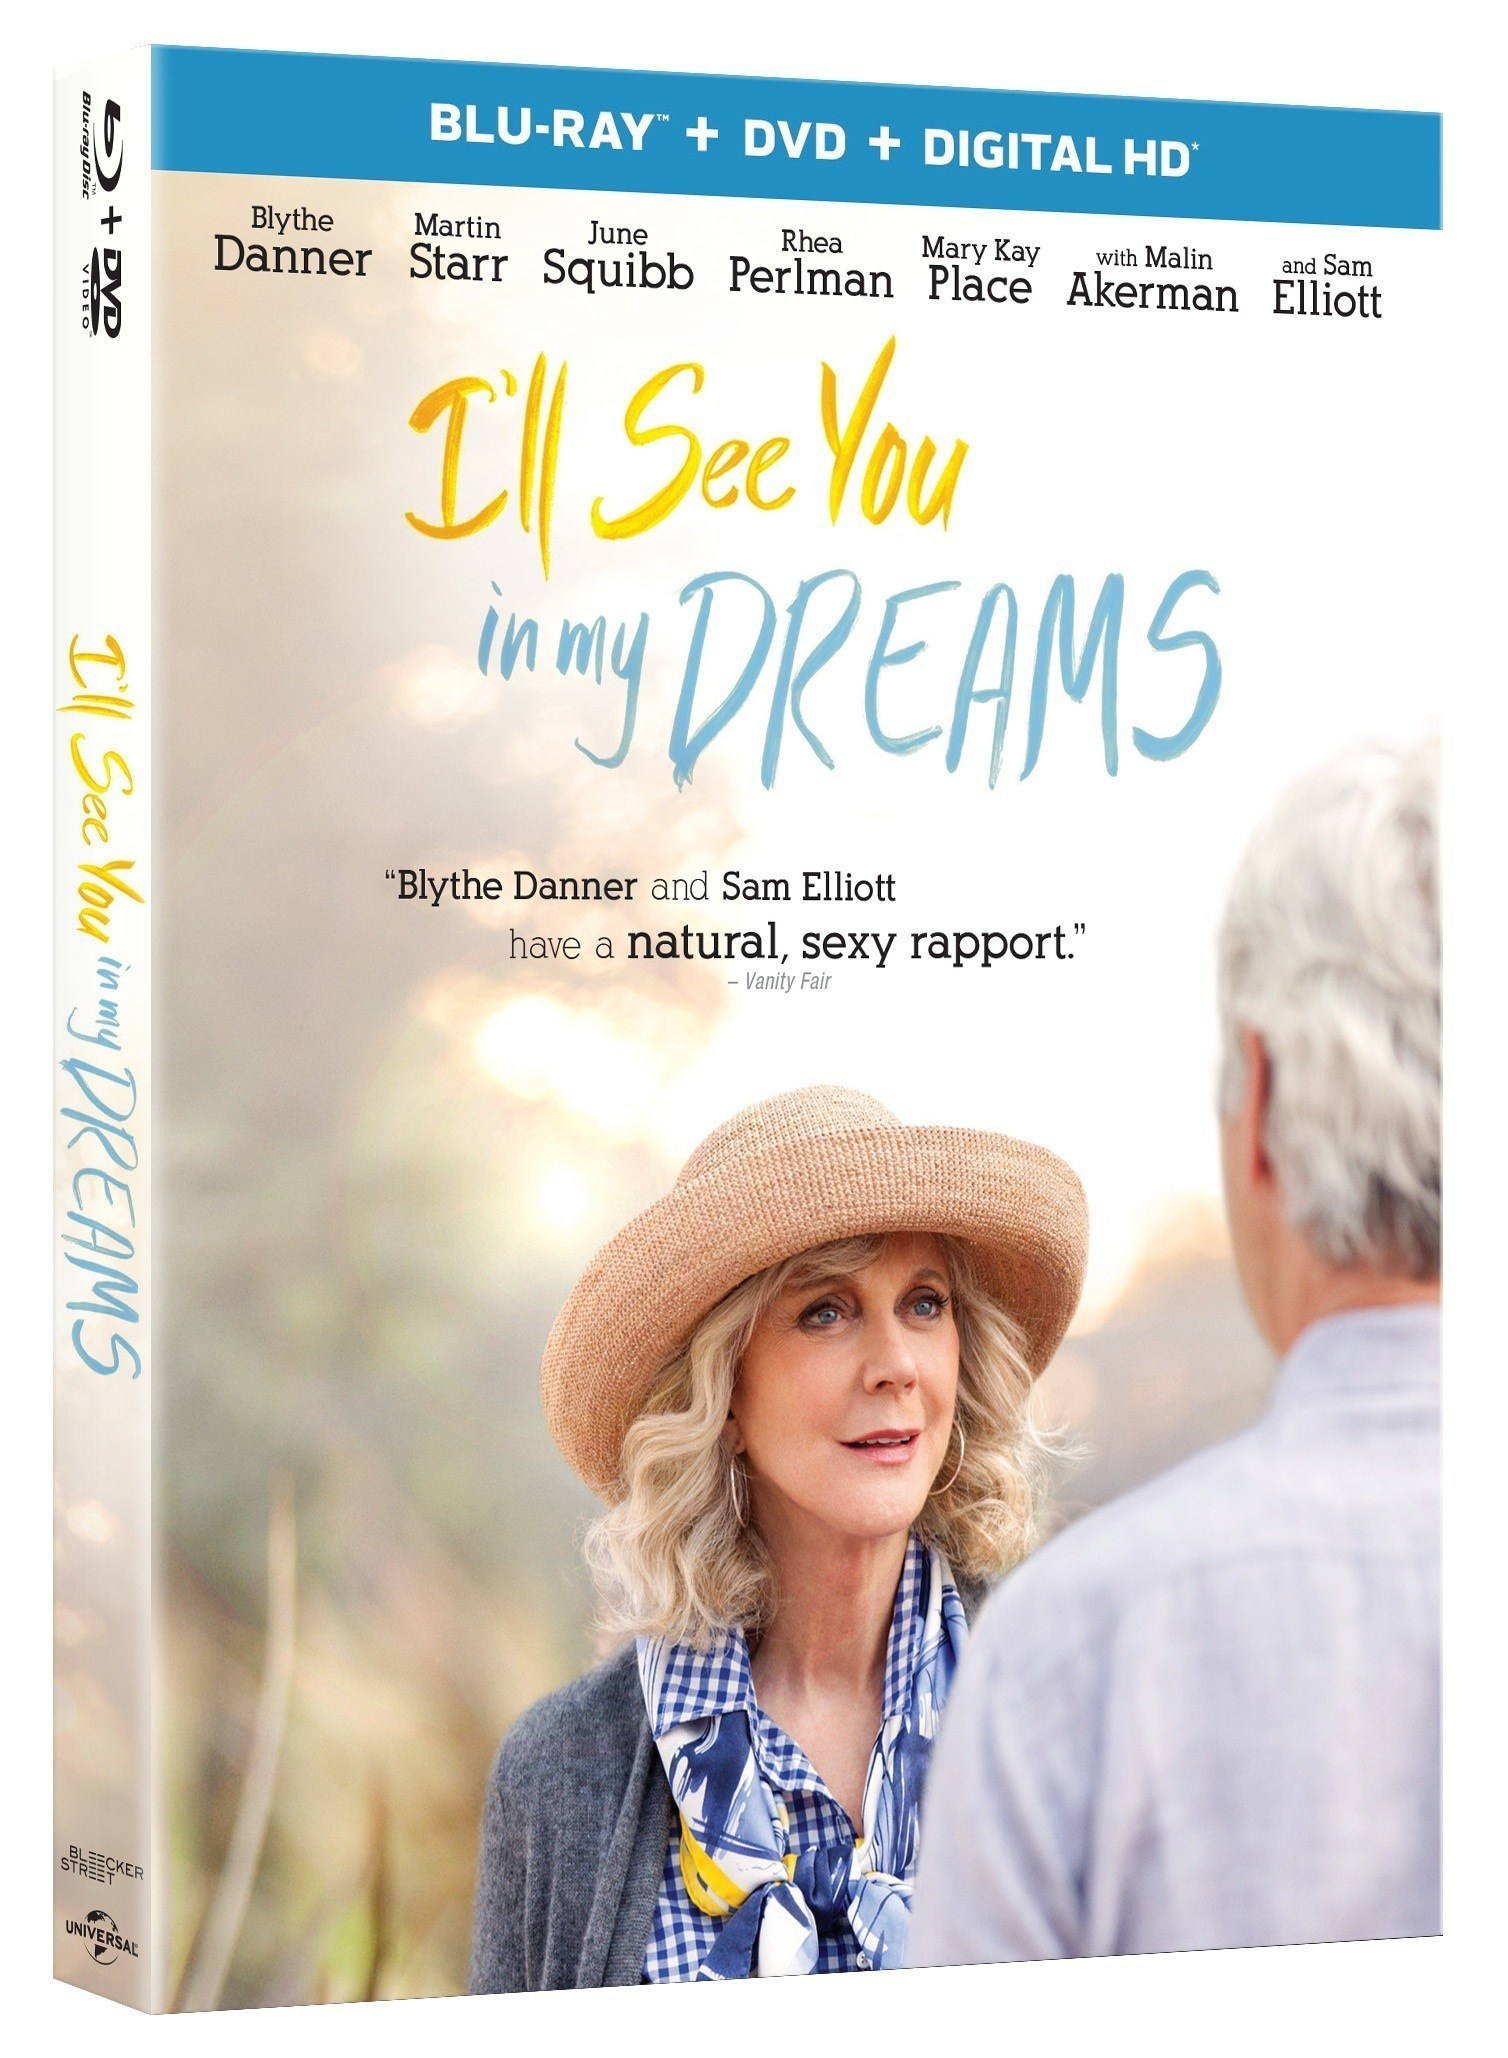 I'll See You In My Dreams Blu-ray Review